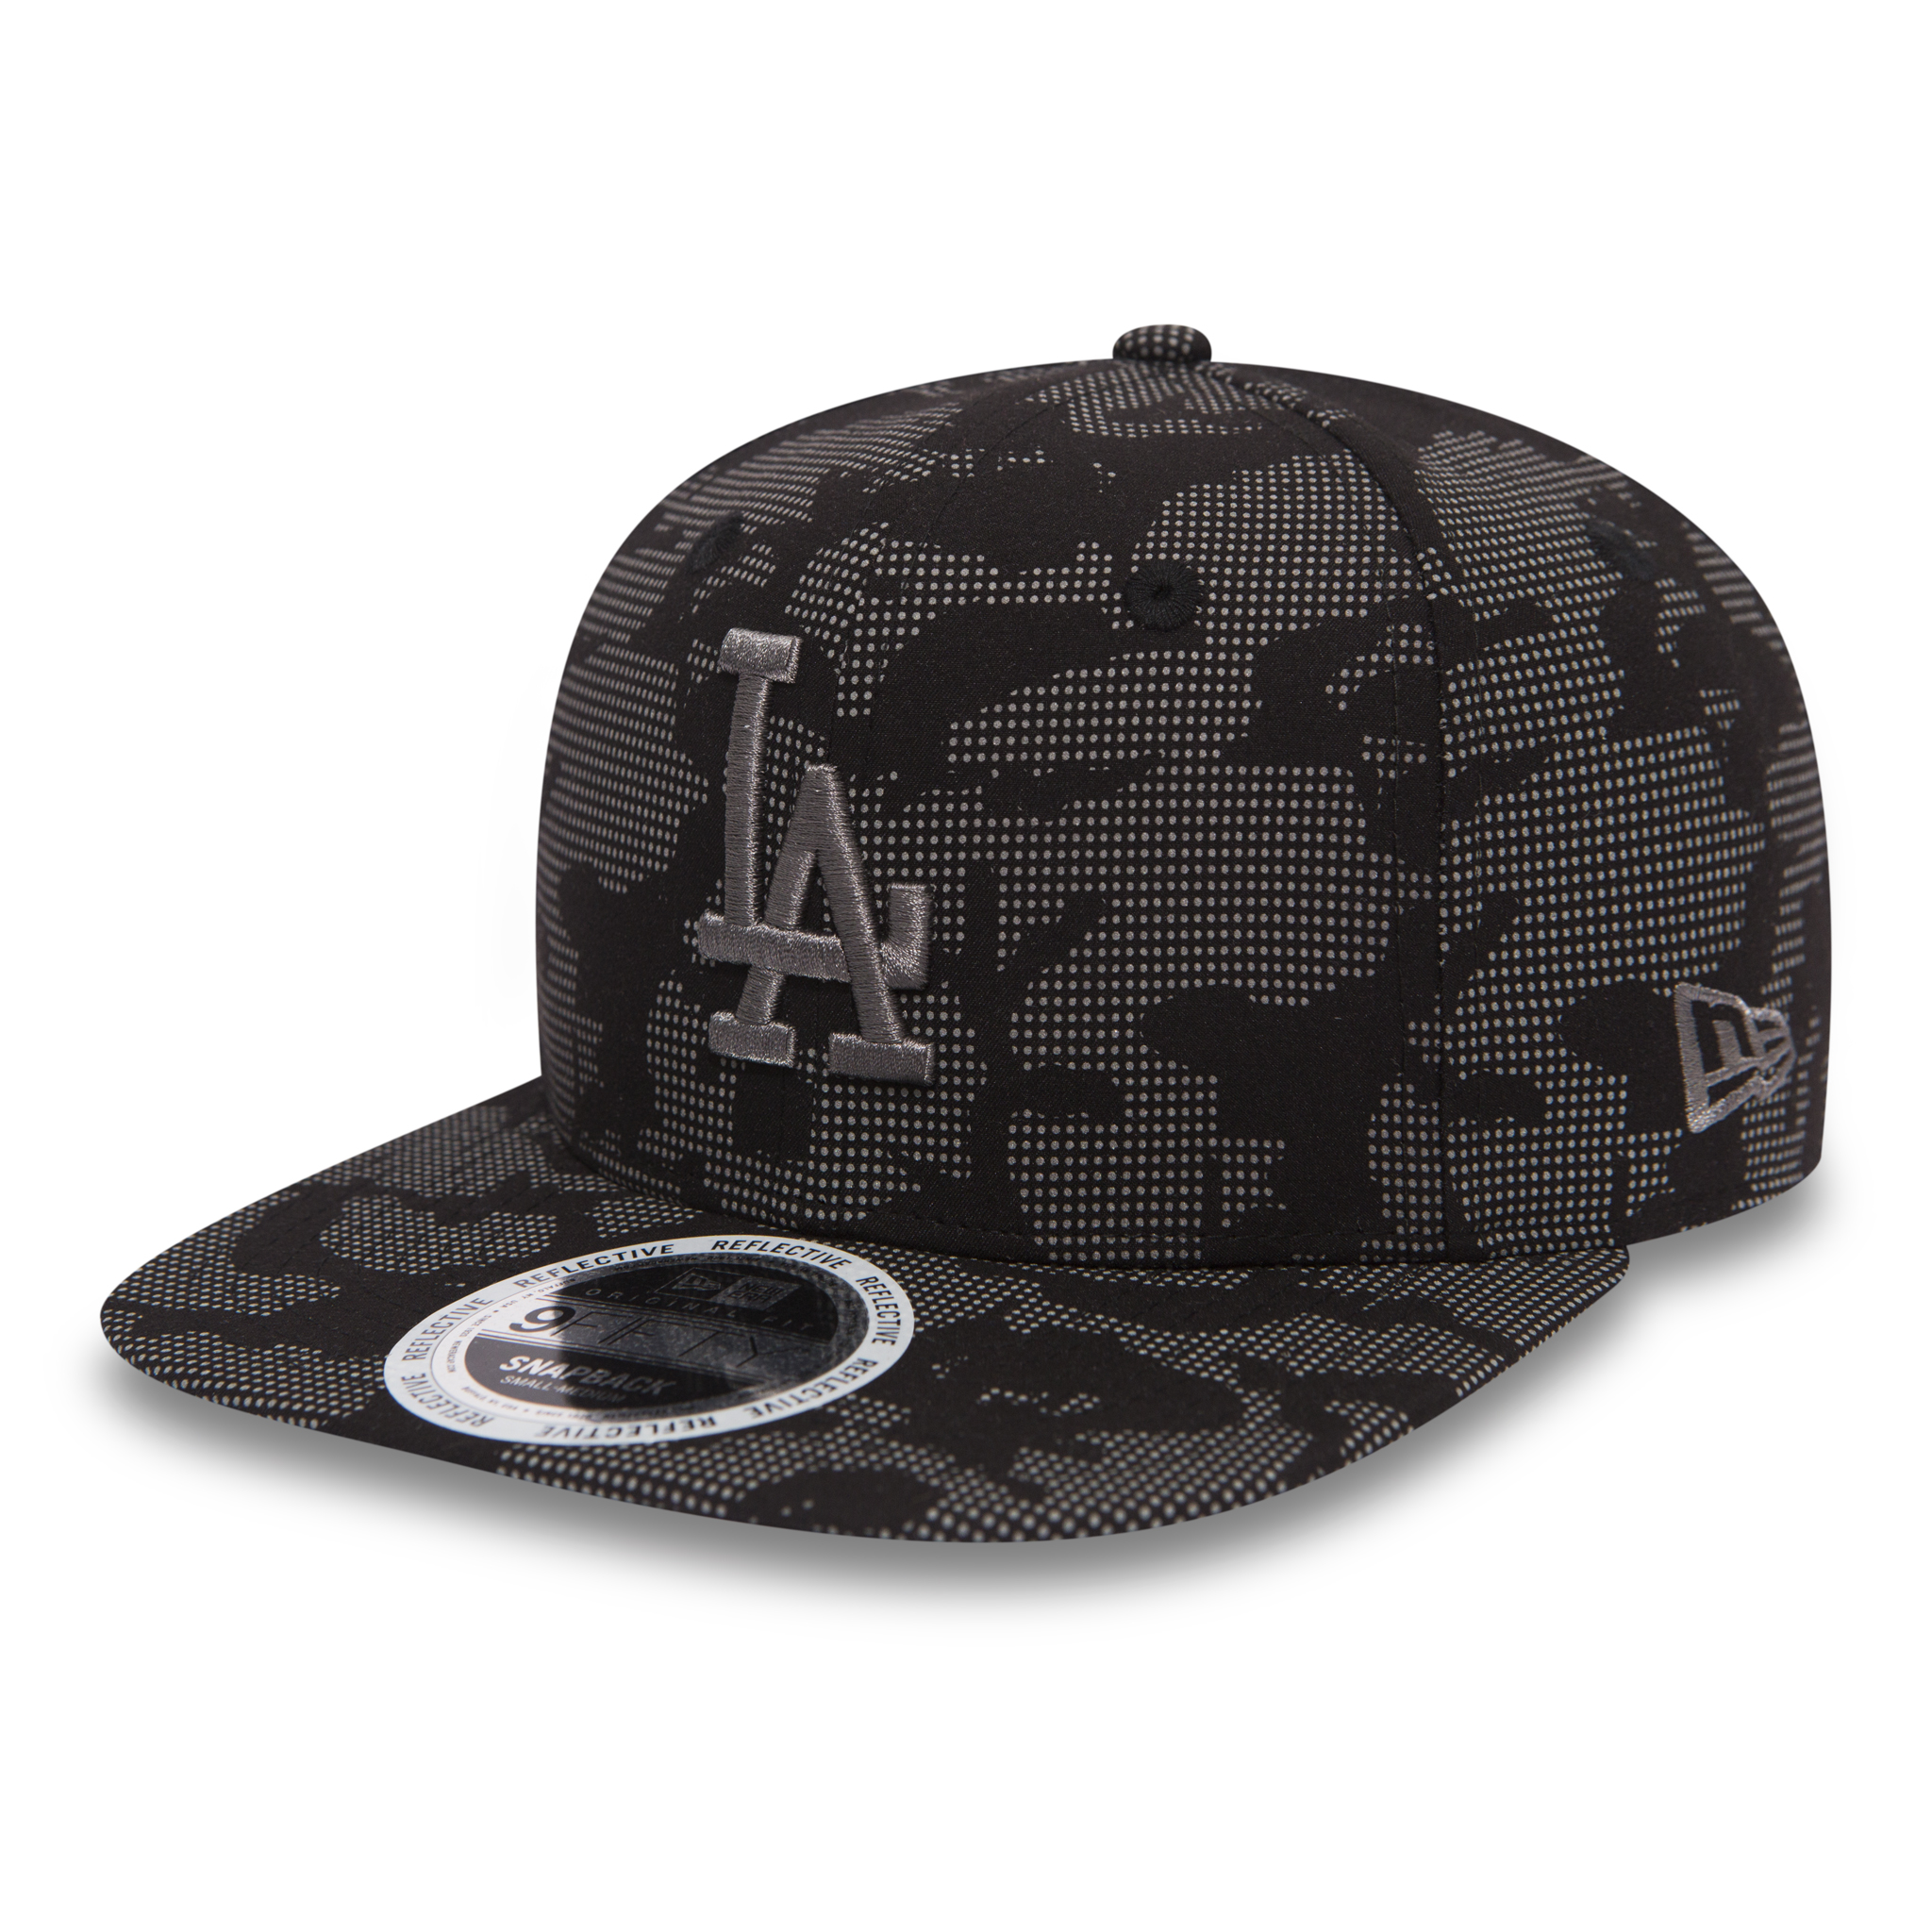 NIGHT OPS REFLECTIVE 9FIFTY. LOS ANGELES DODGERS. BLACK